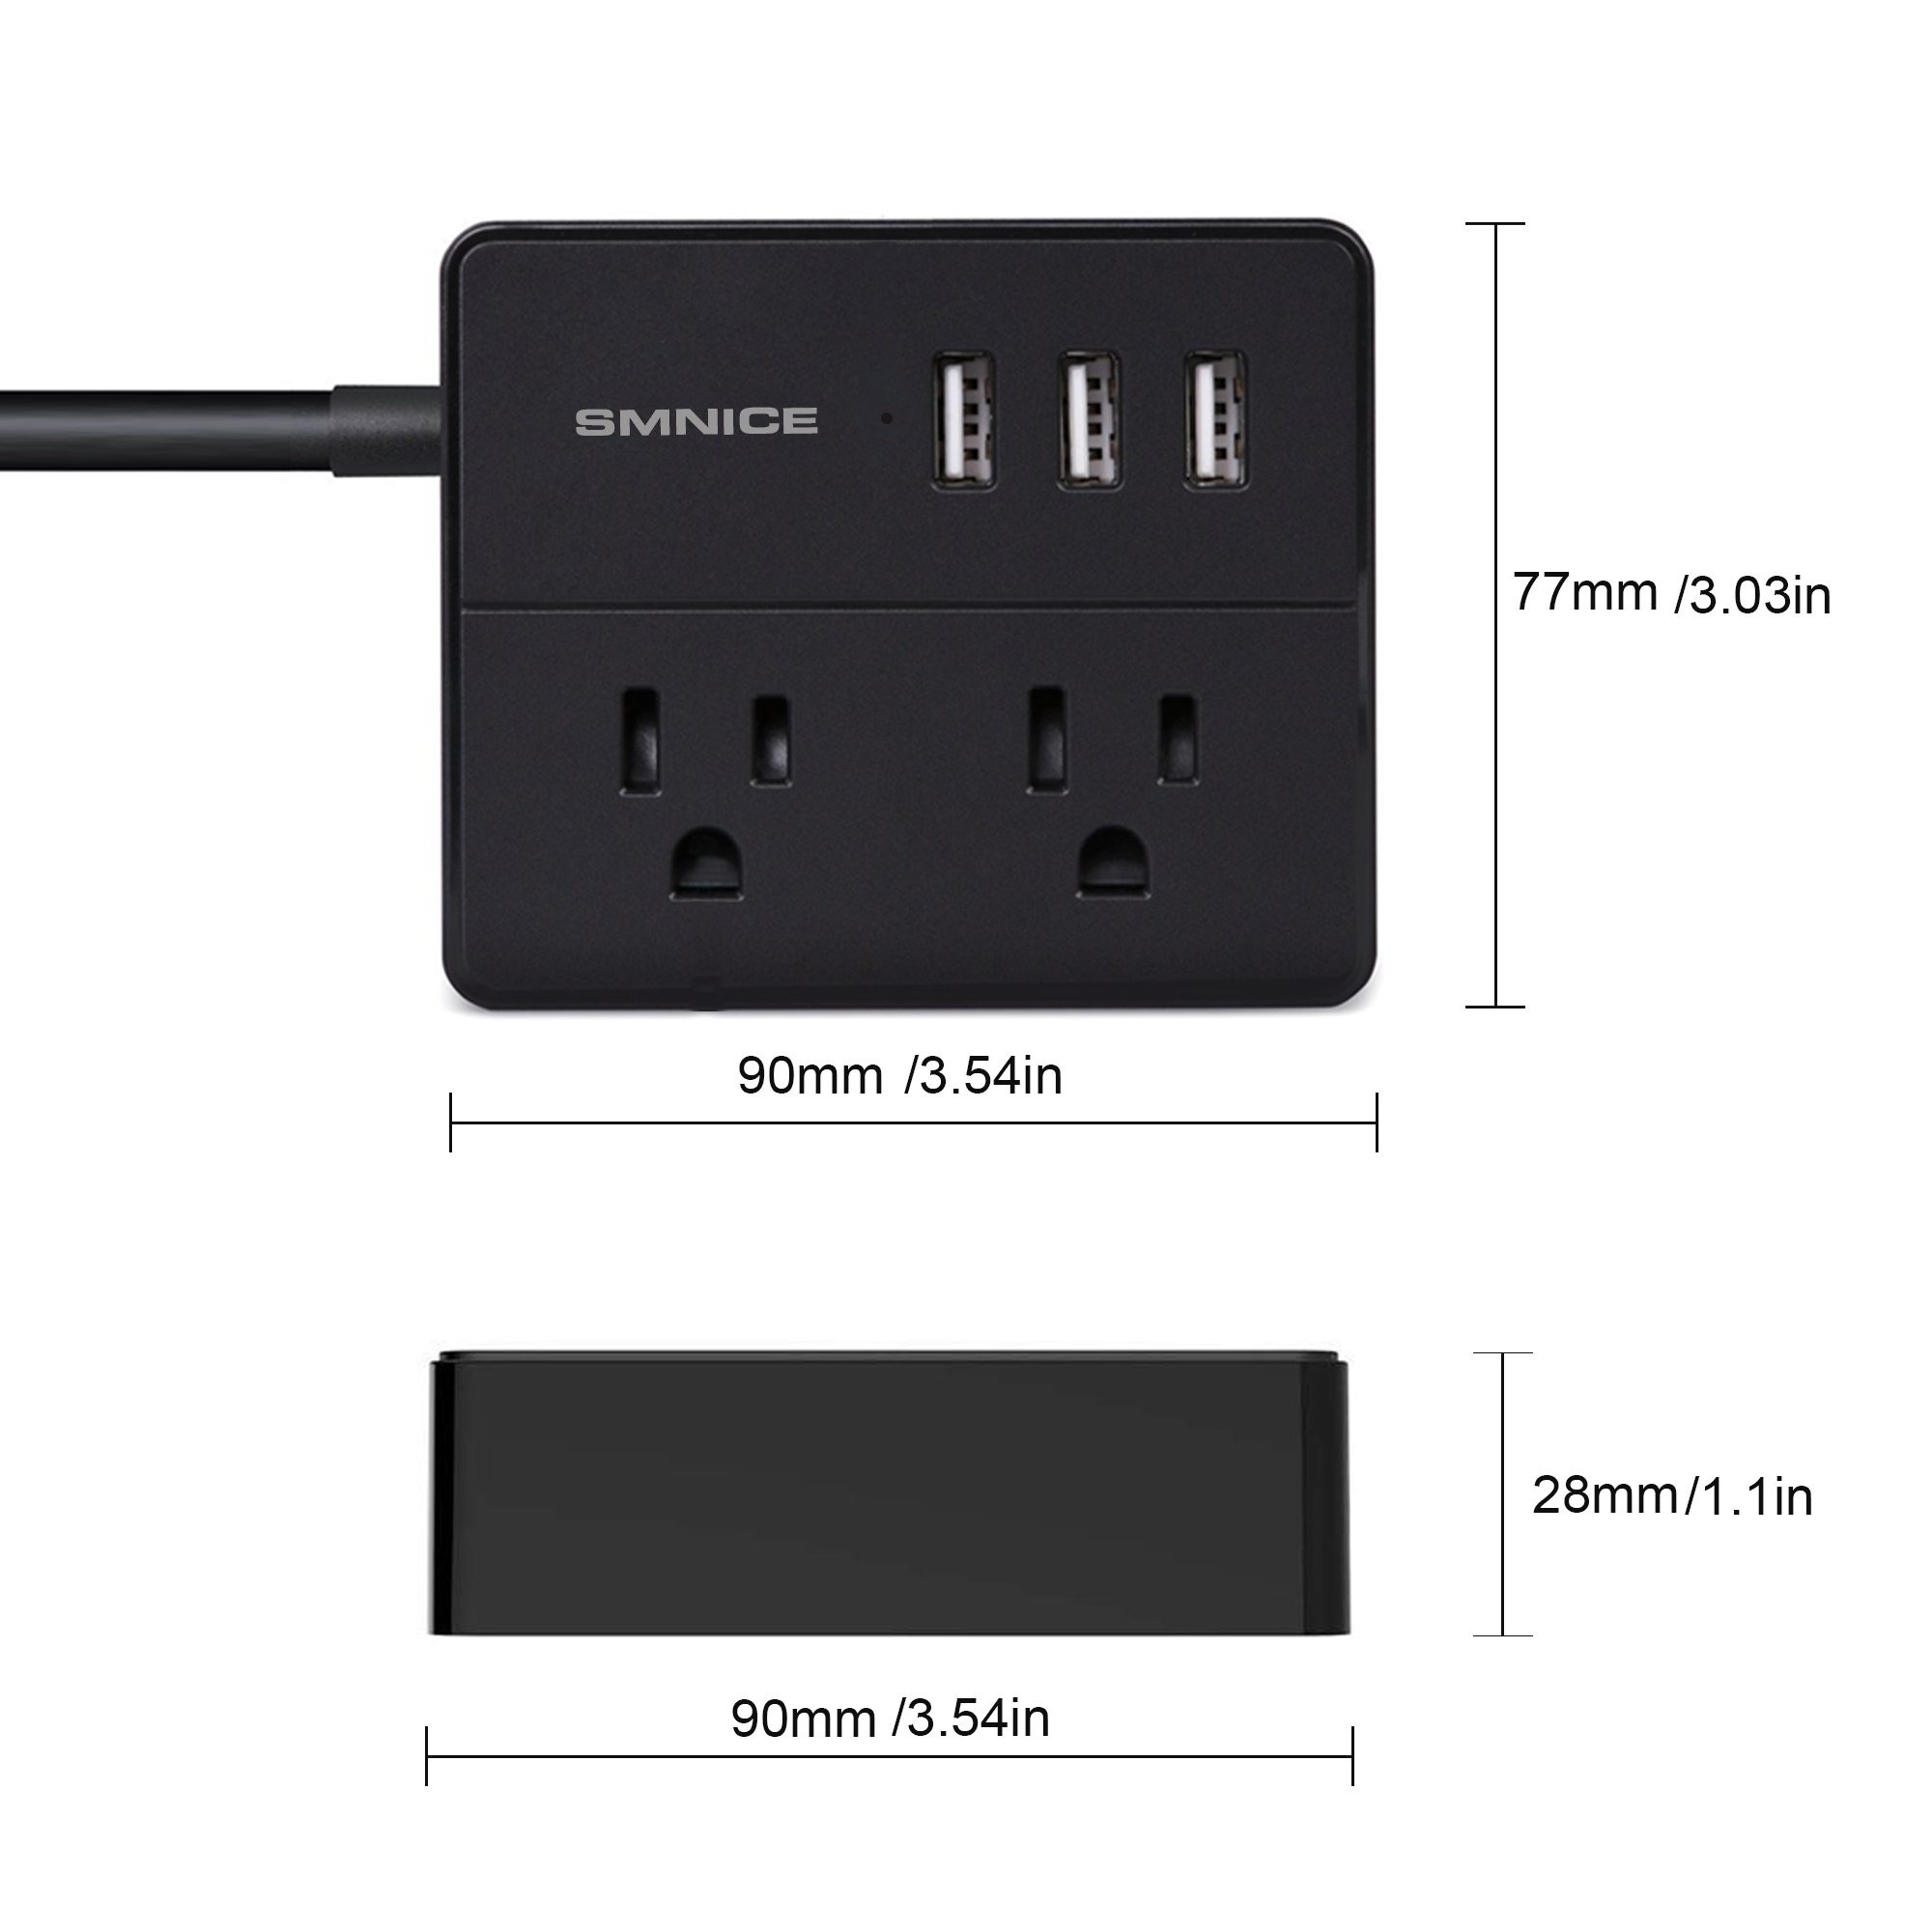 Portable Desktop Power Strip,SMNICE Travel Power Strip with 3 USB Smart Charging Station 2 Outlets and Child Safety Cover for Home Travel,5Ft Cord-BLACK (Black) by SMNICE (Image #2)